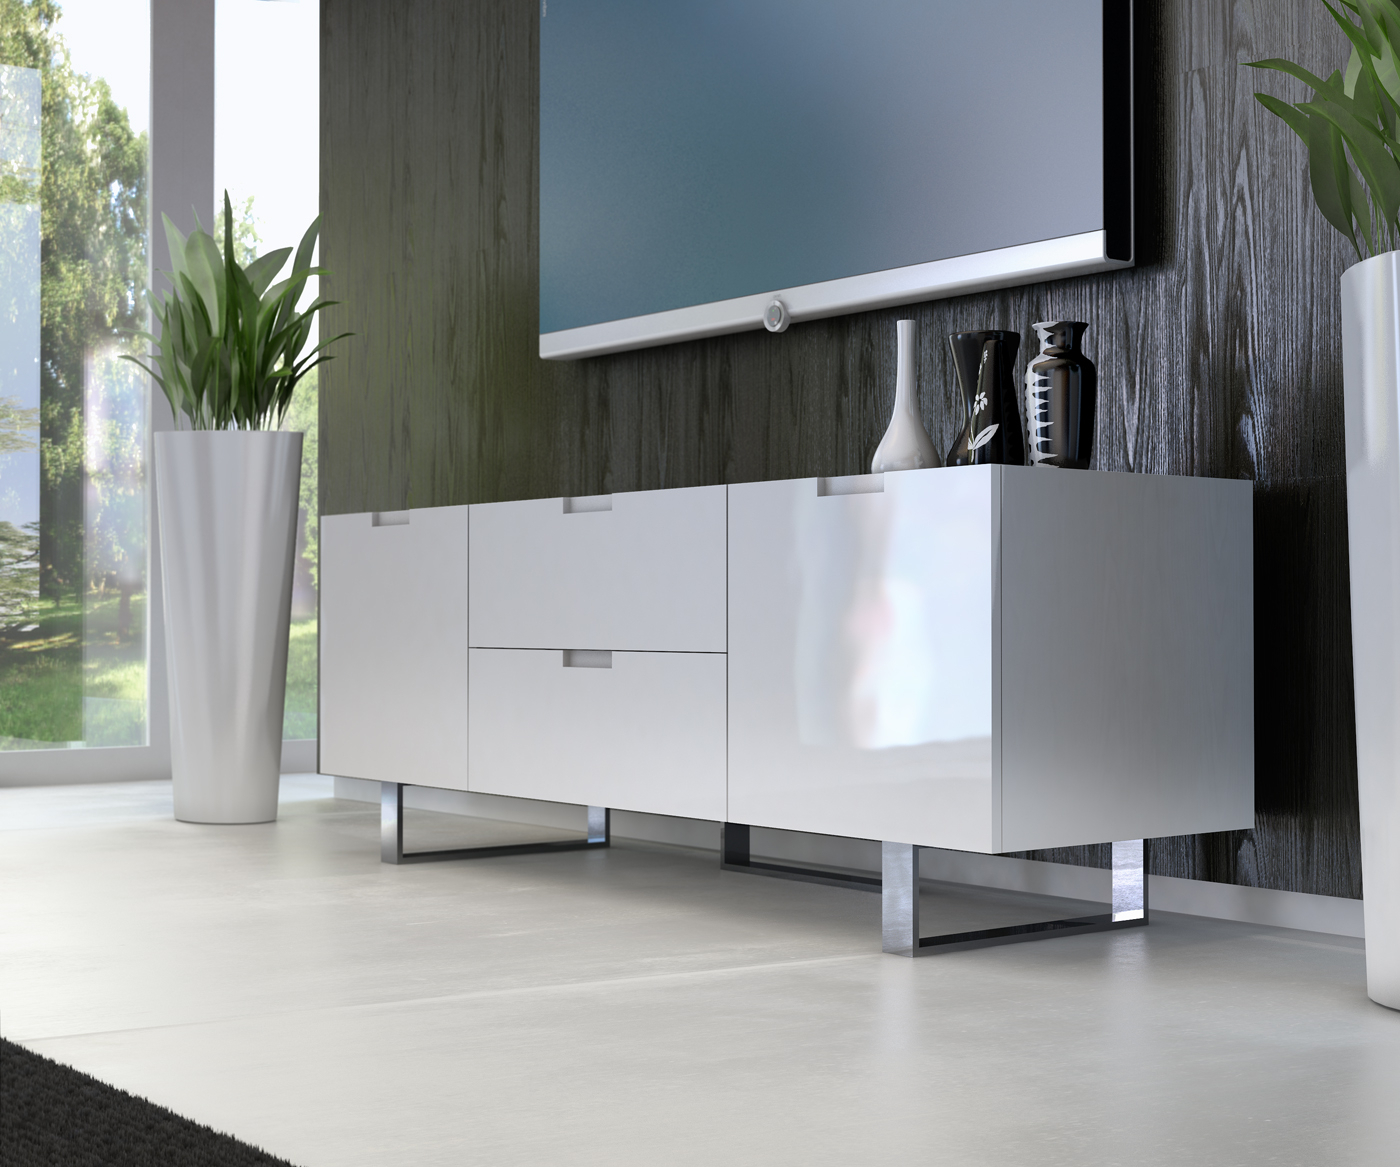 Fashionable Modern White Lacquer Tv Stands With Regard To Ikea Tv Stand White Contemporary Consoles Lacquer Stands With Mount (View 5 of 20)